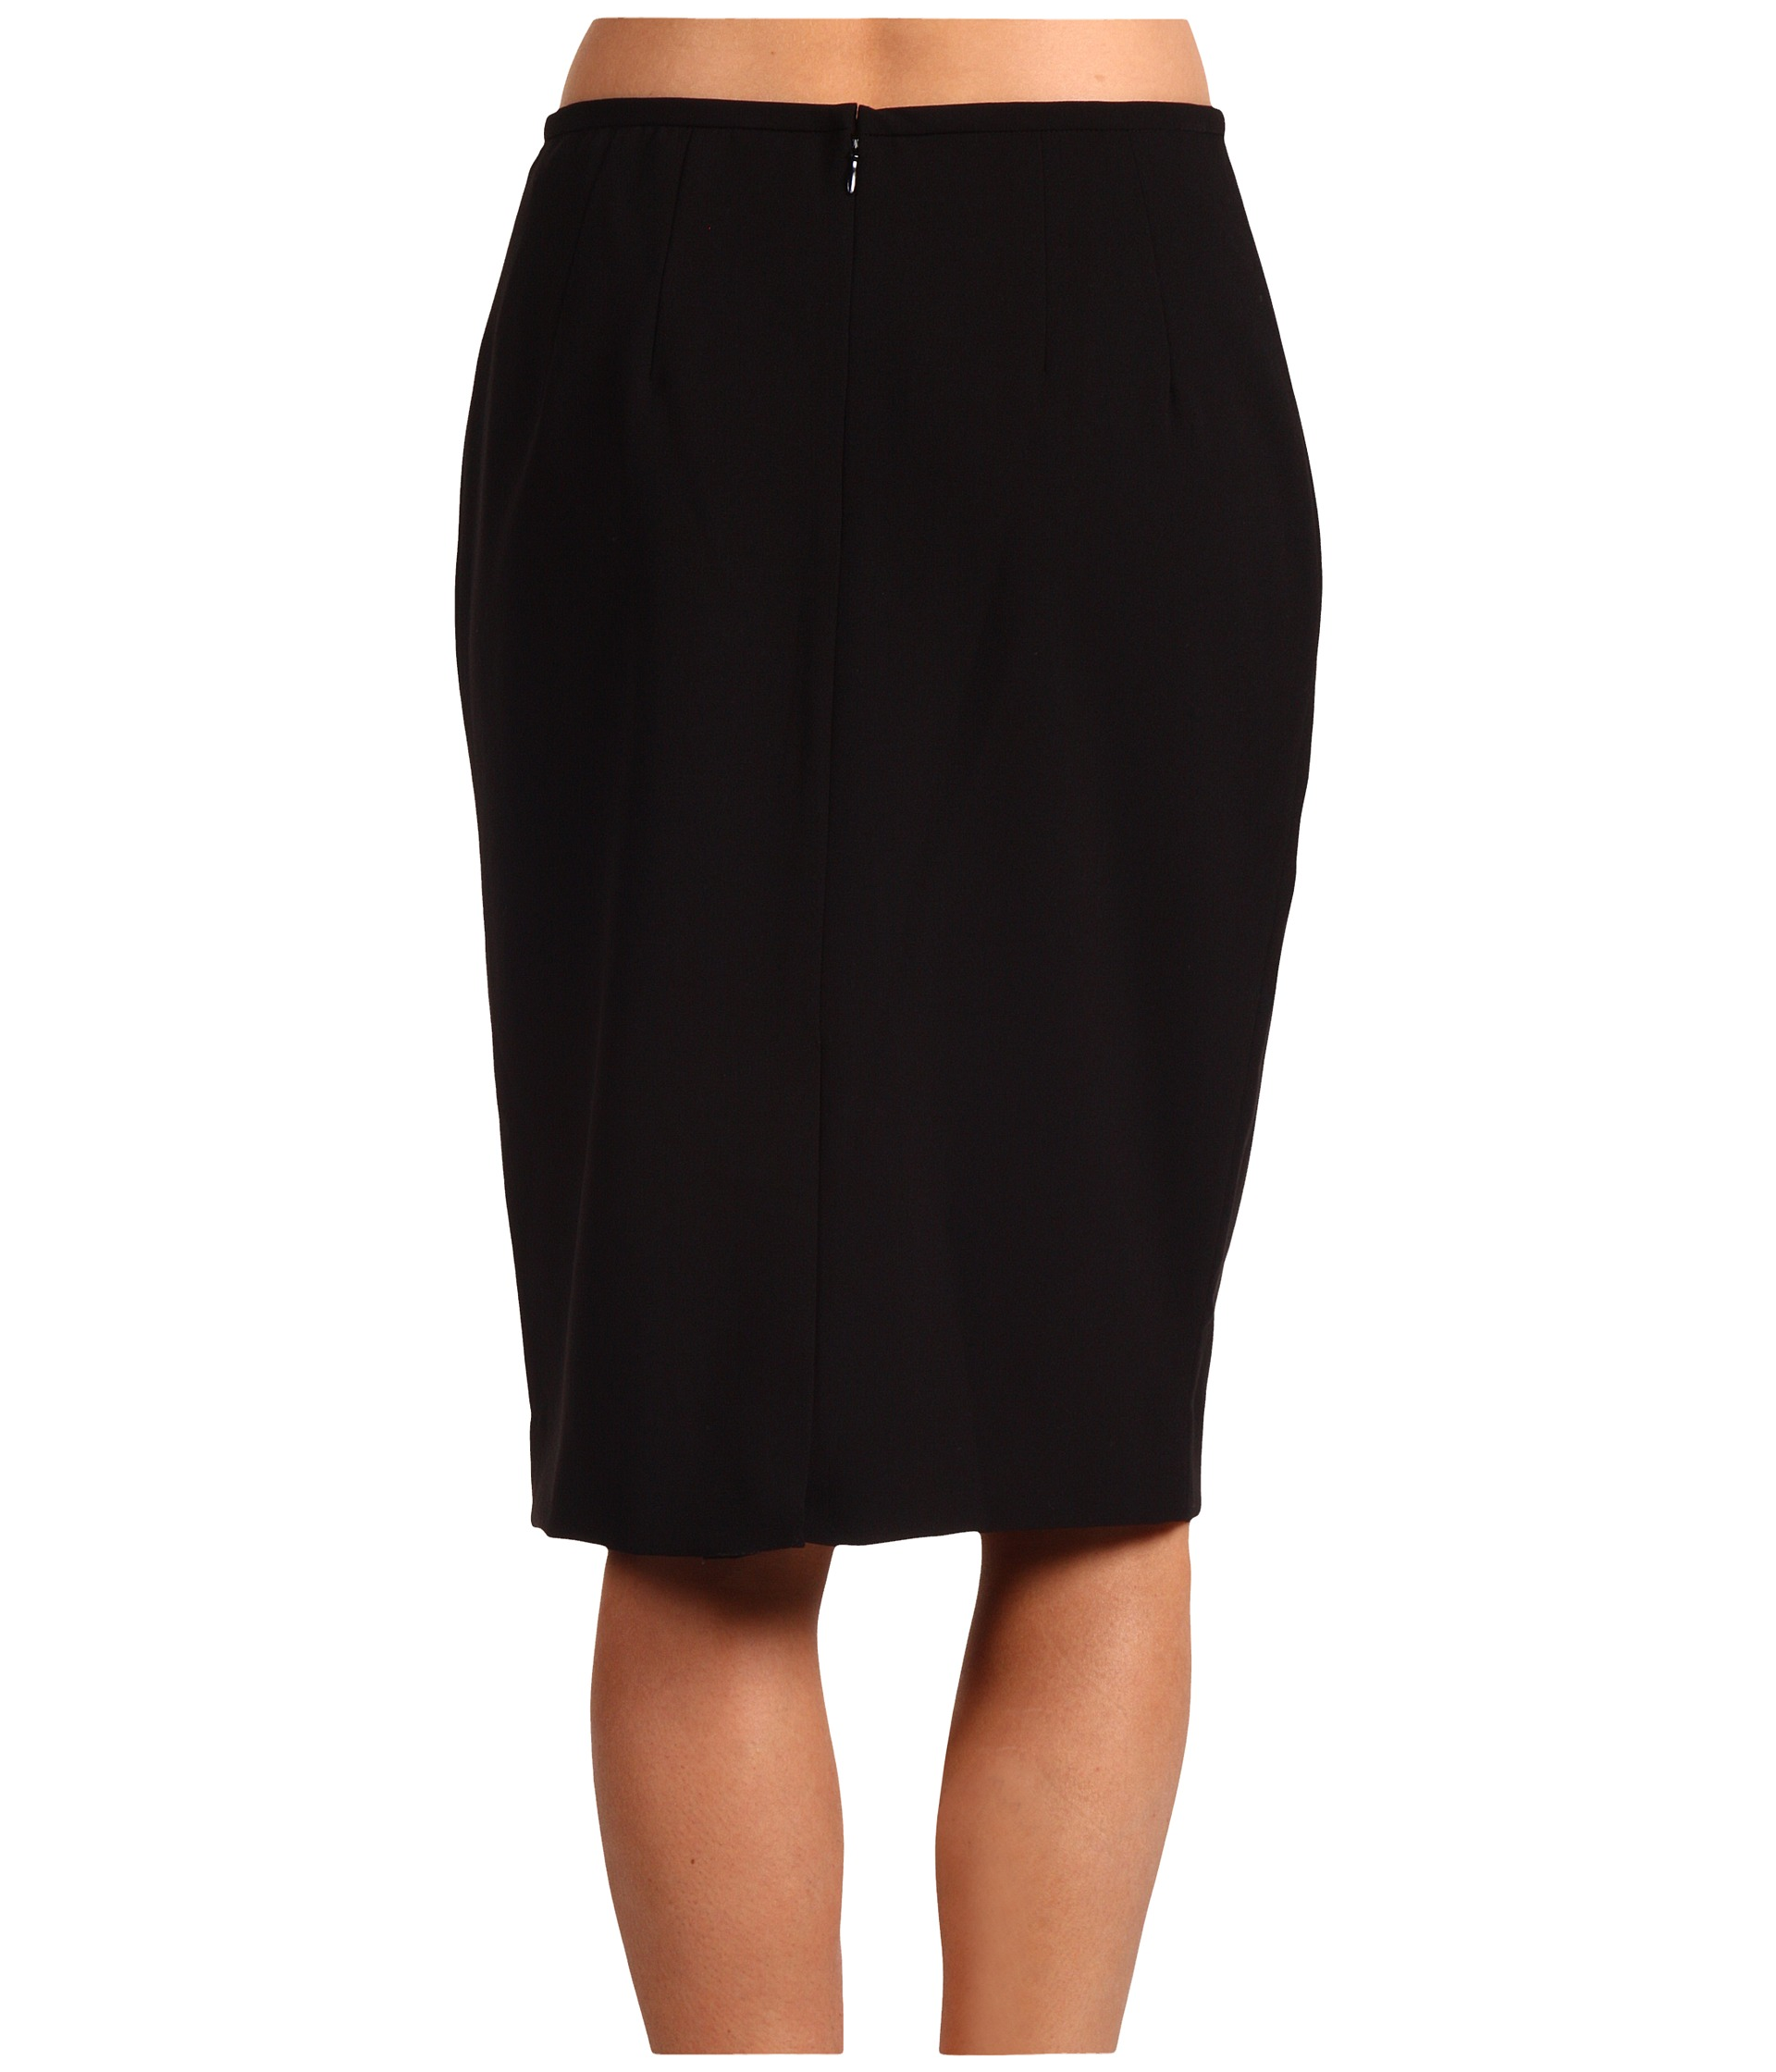 Calvin Klein Pencil Skirt - Zappos.com Free Shipping BOTH Ways